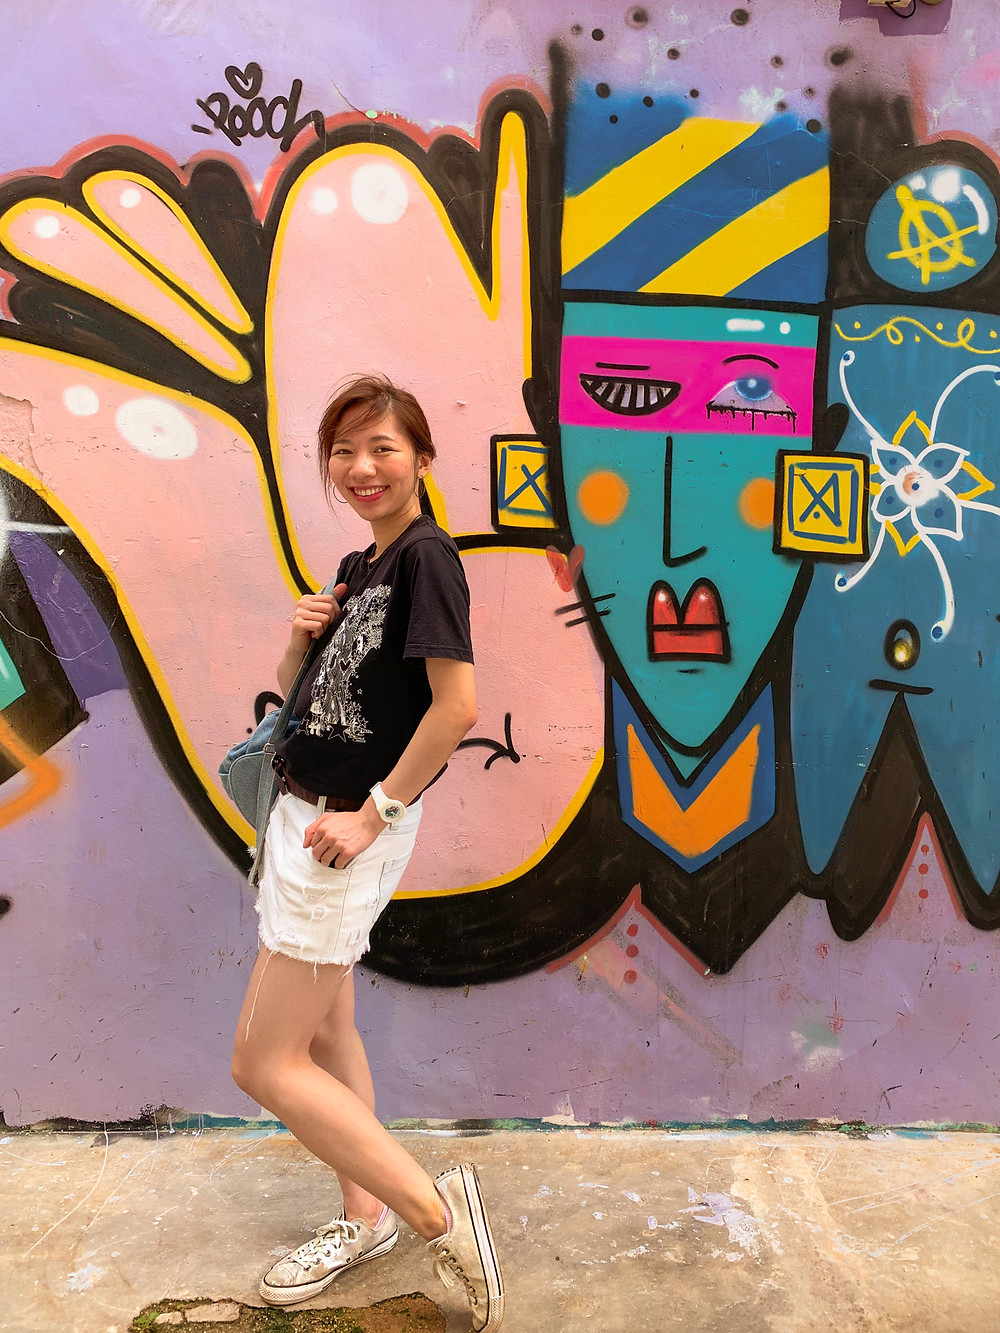 Black t-shirt, white ripped denim skirt, silver Converse sneakers, casual summer outfit by RollingBear Travels.